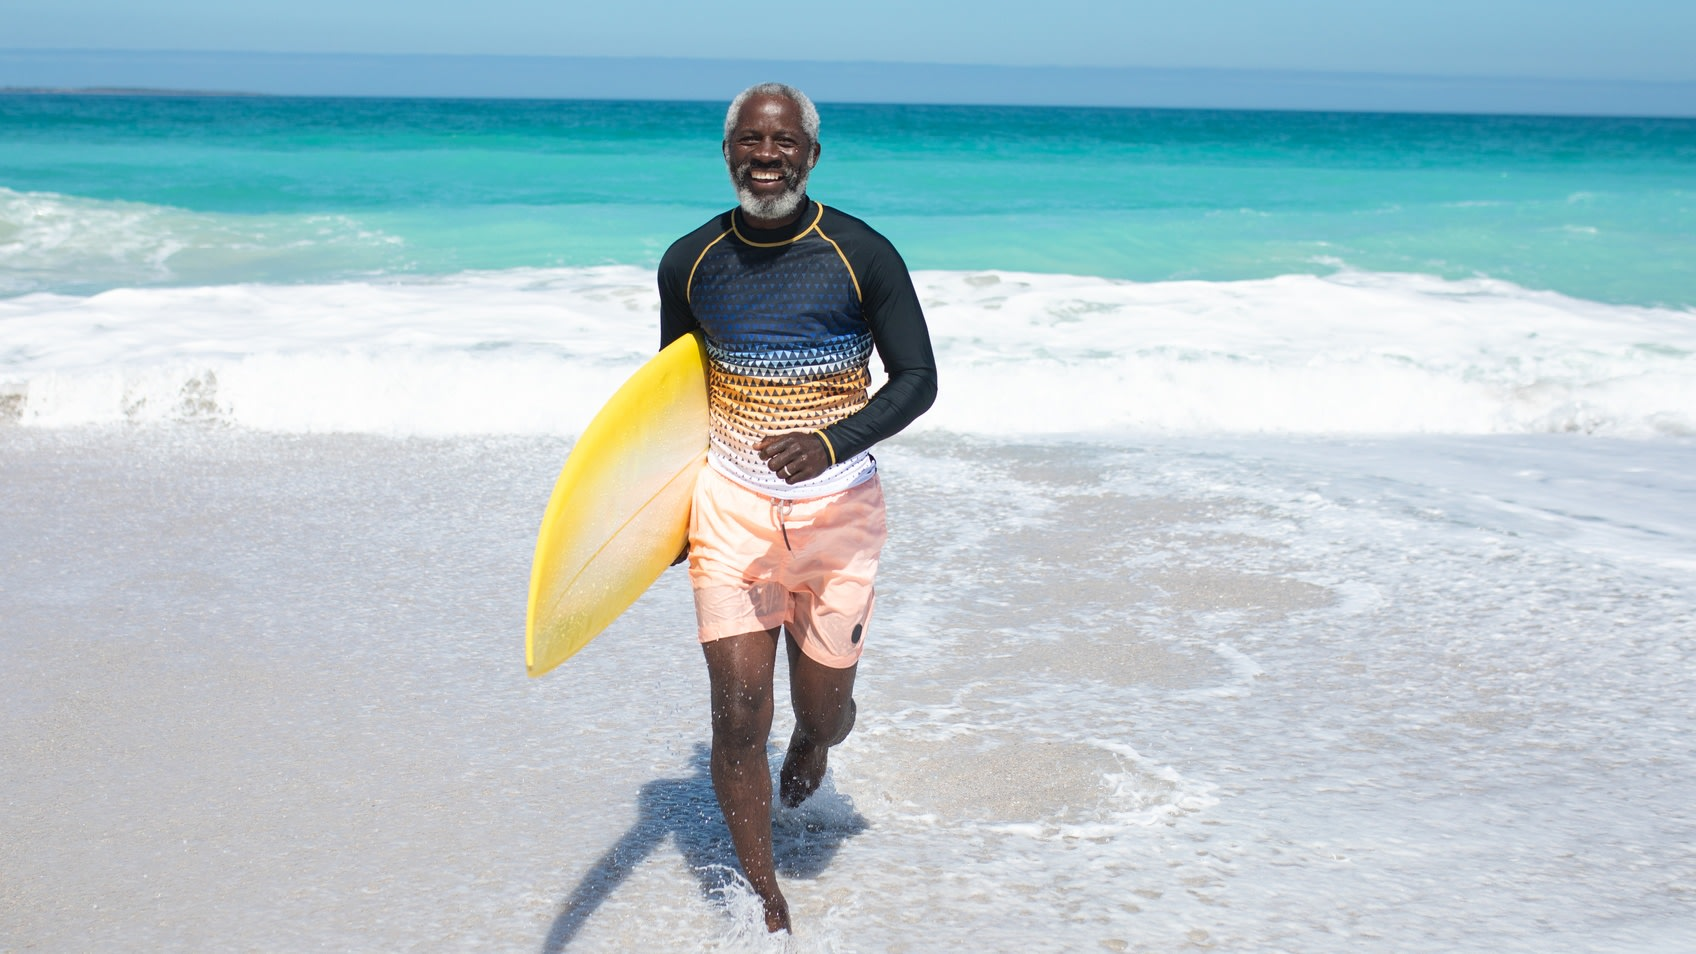 Two Surfers Who Faced Racism In The Water Now Leading Efforts To Diversify The Sport